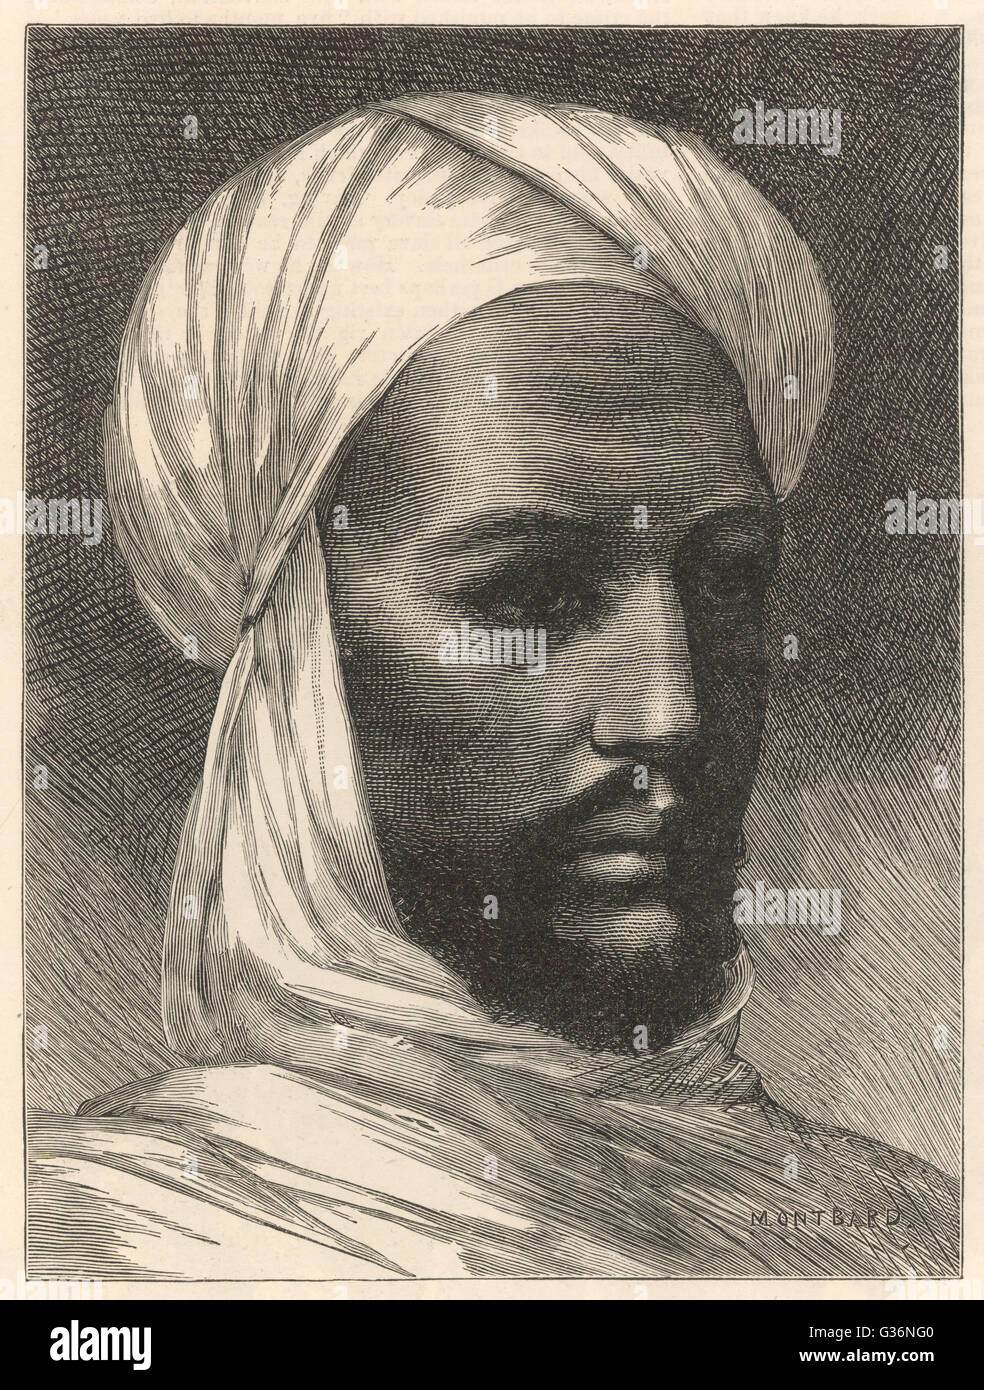 Mohammed Ahmed (Muhammad Ahmad bin Abd Allah)(1844-1885), known as The Mahdi (meaning the messianic redeemer of - Stock Image